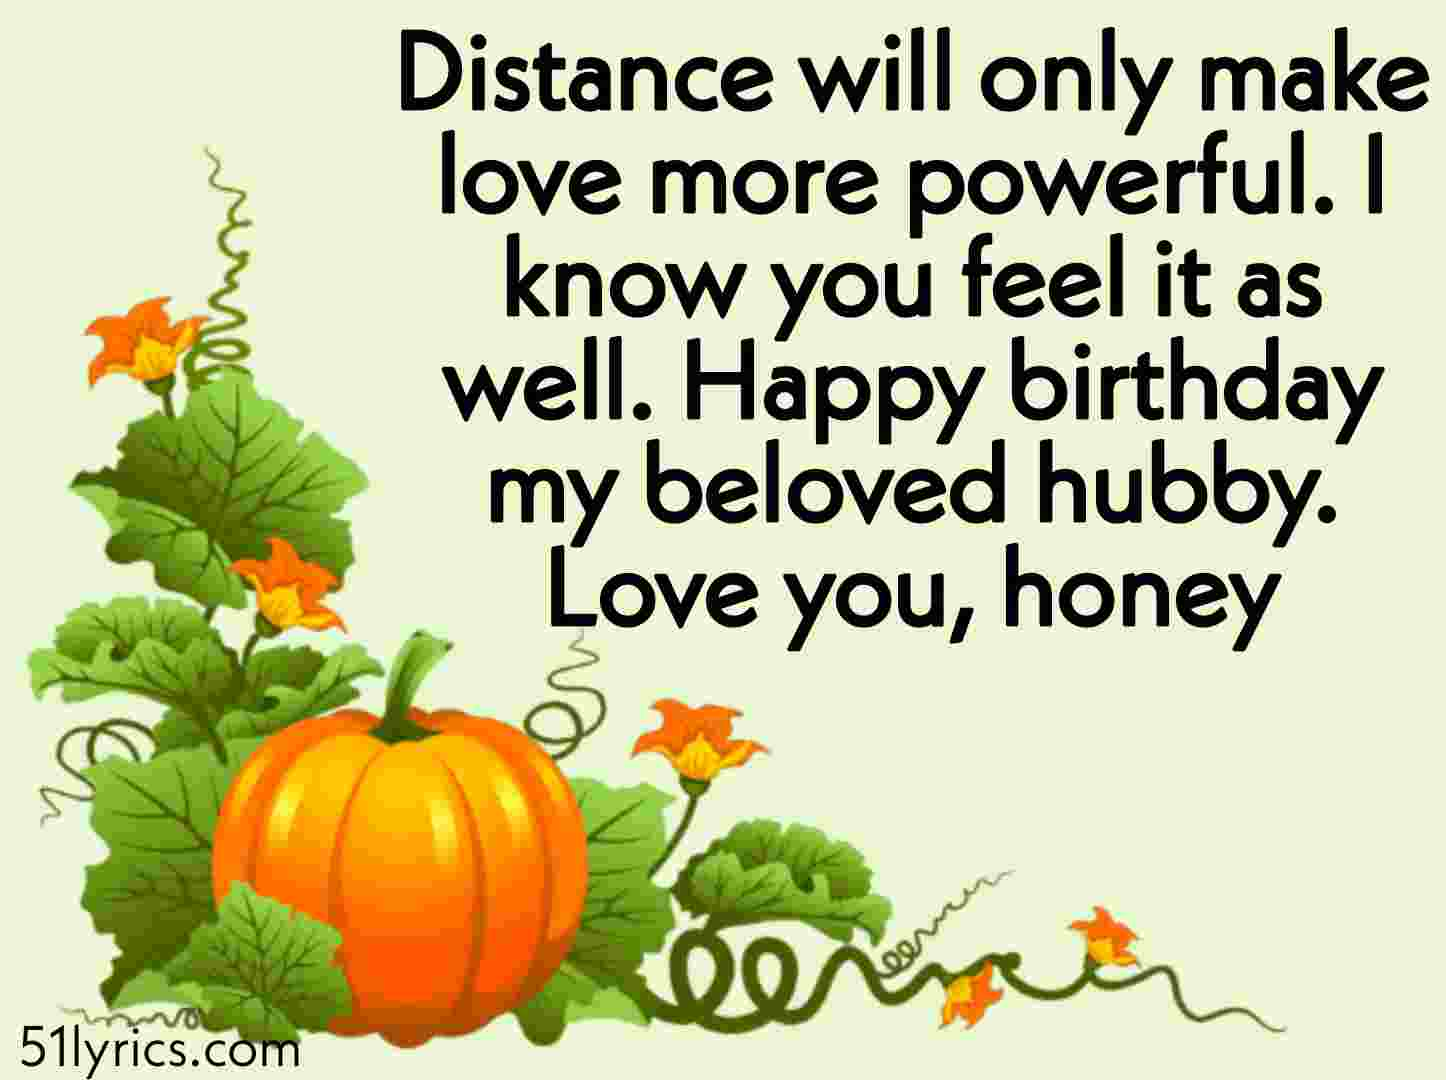 Missing Husband Quotes on his birthday